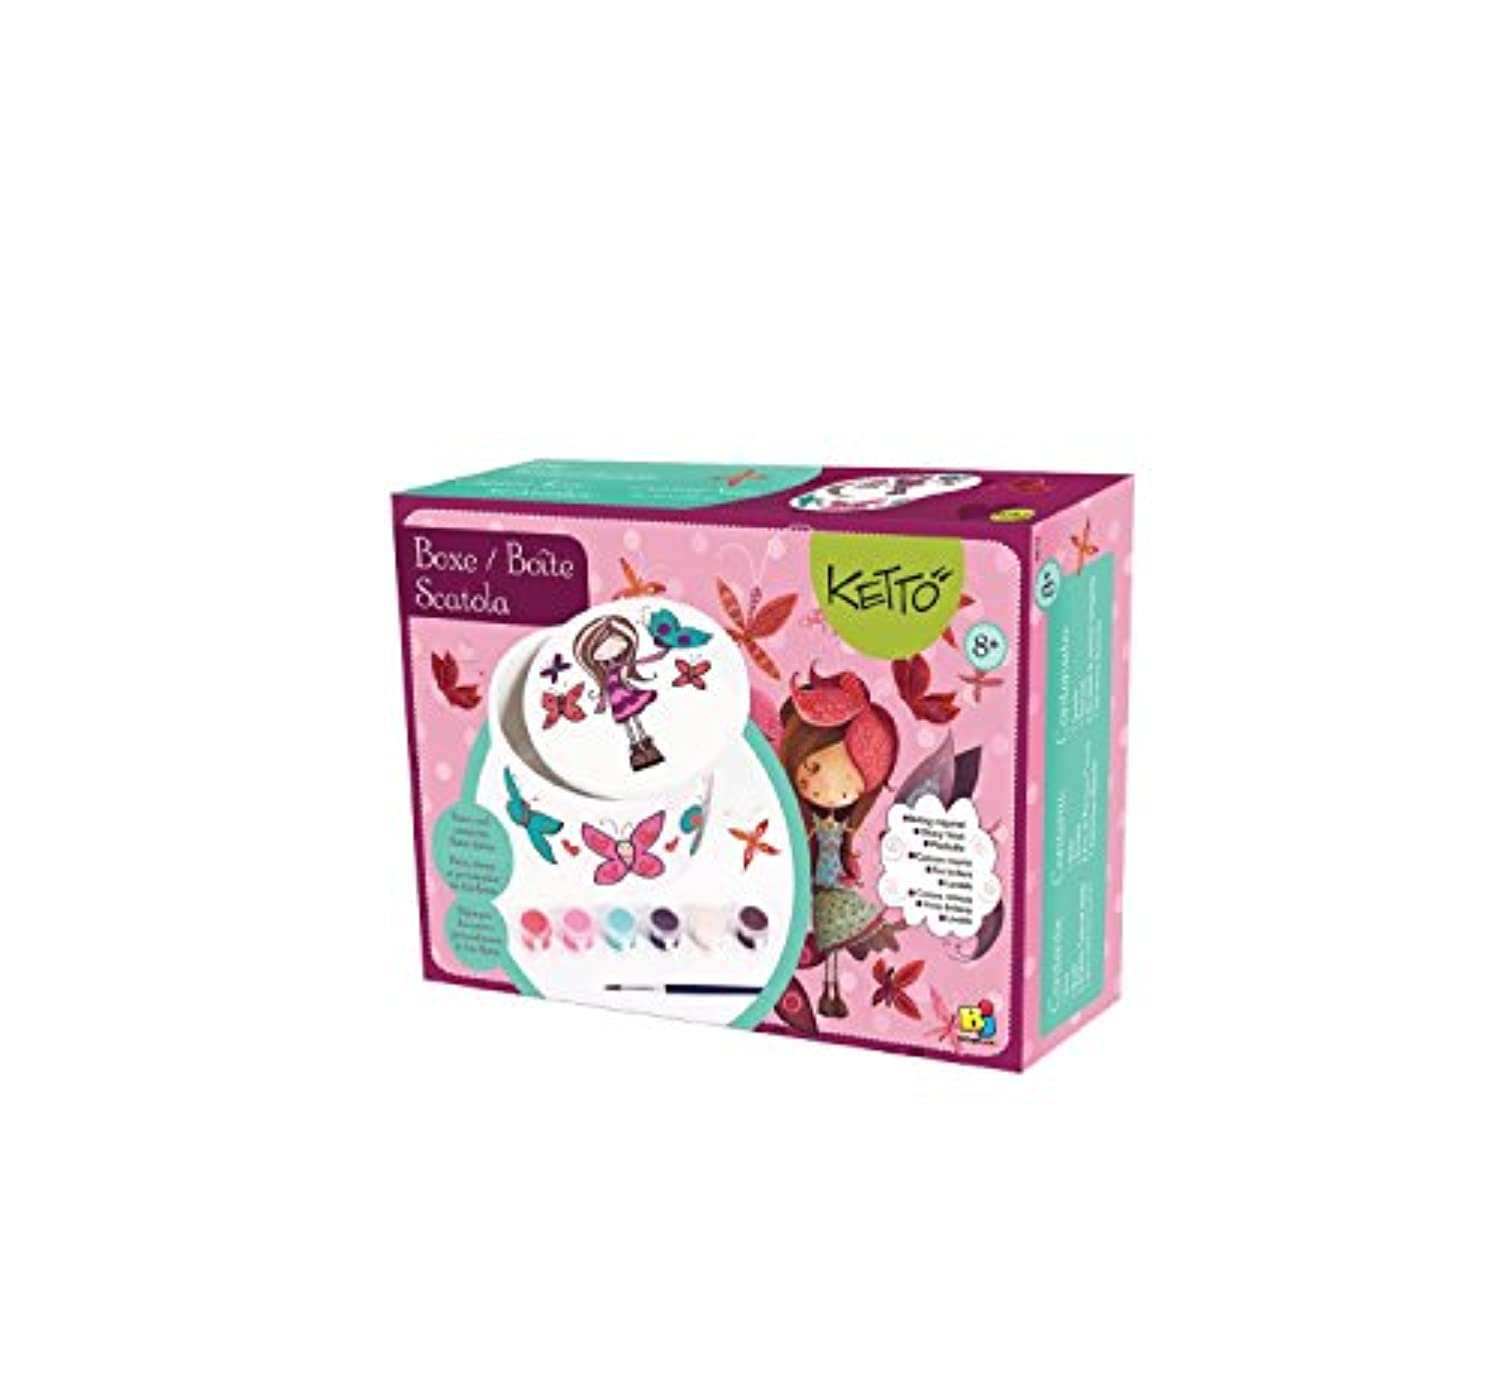 Bojeux Porcelain Creation Box Butterfly Building Kit [並行輸入品]